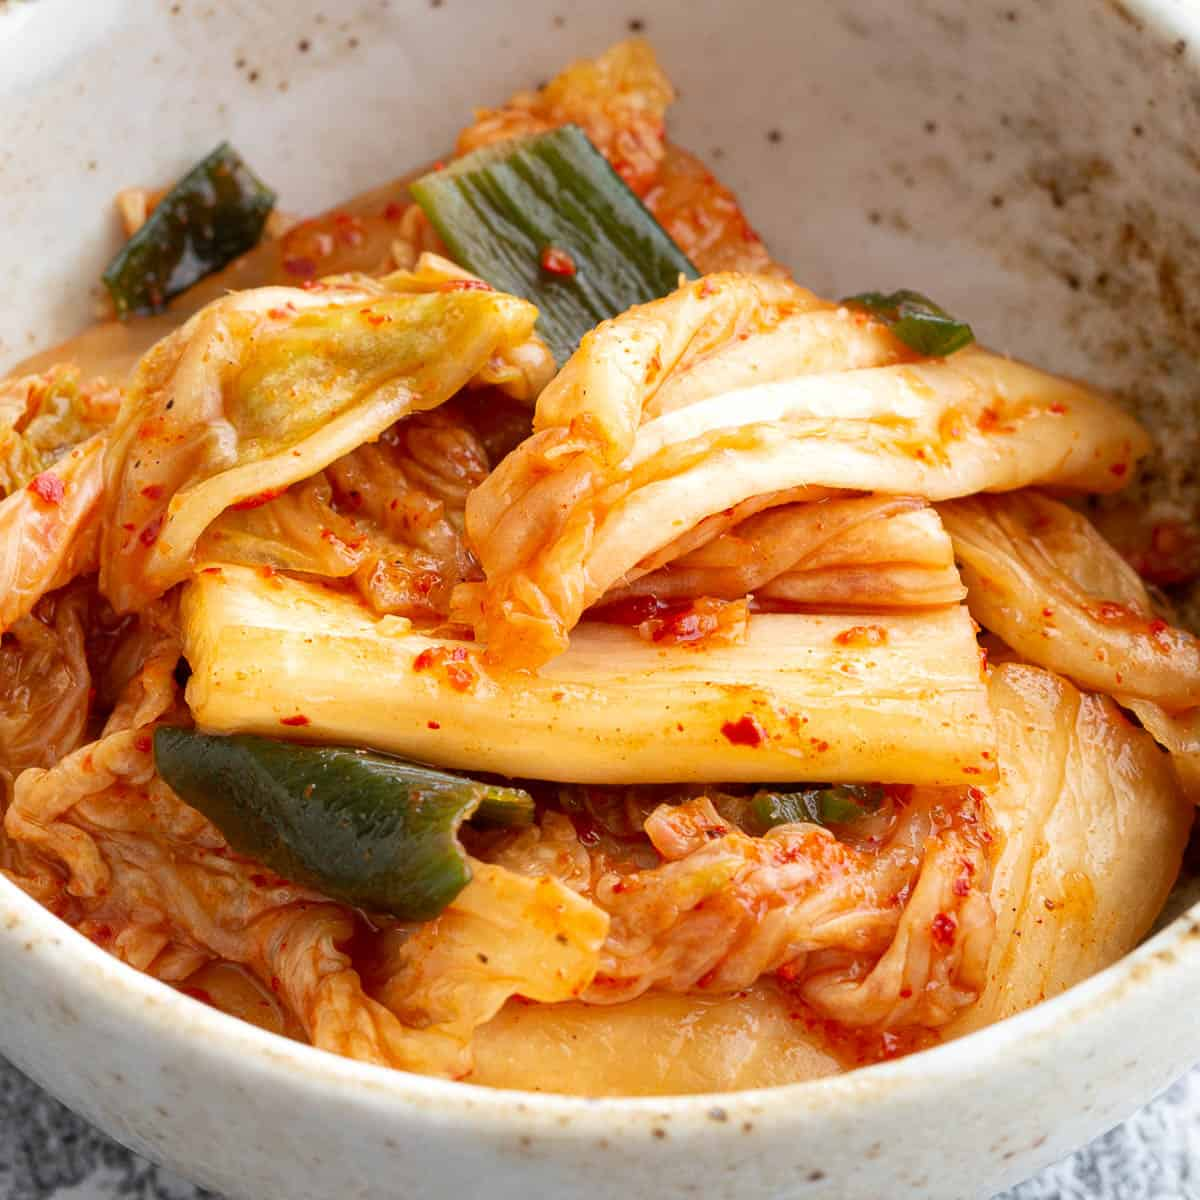 Fresh homemade kimchi in a bowl.